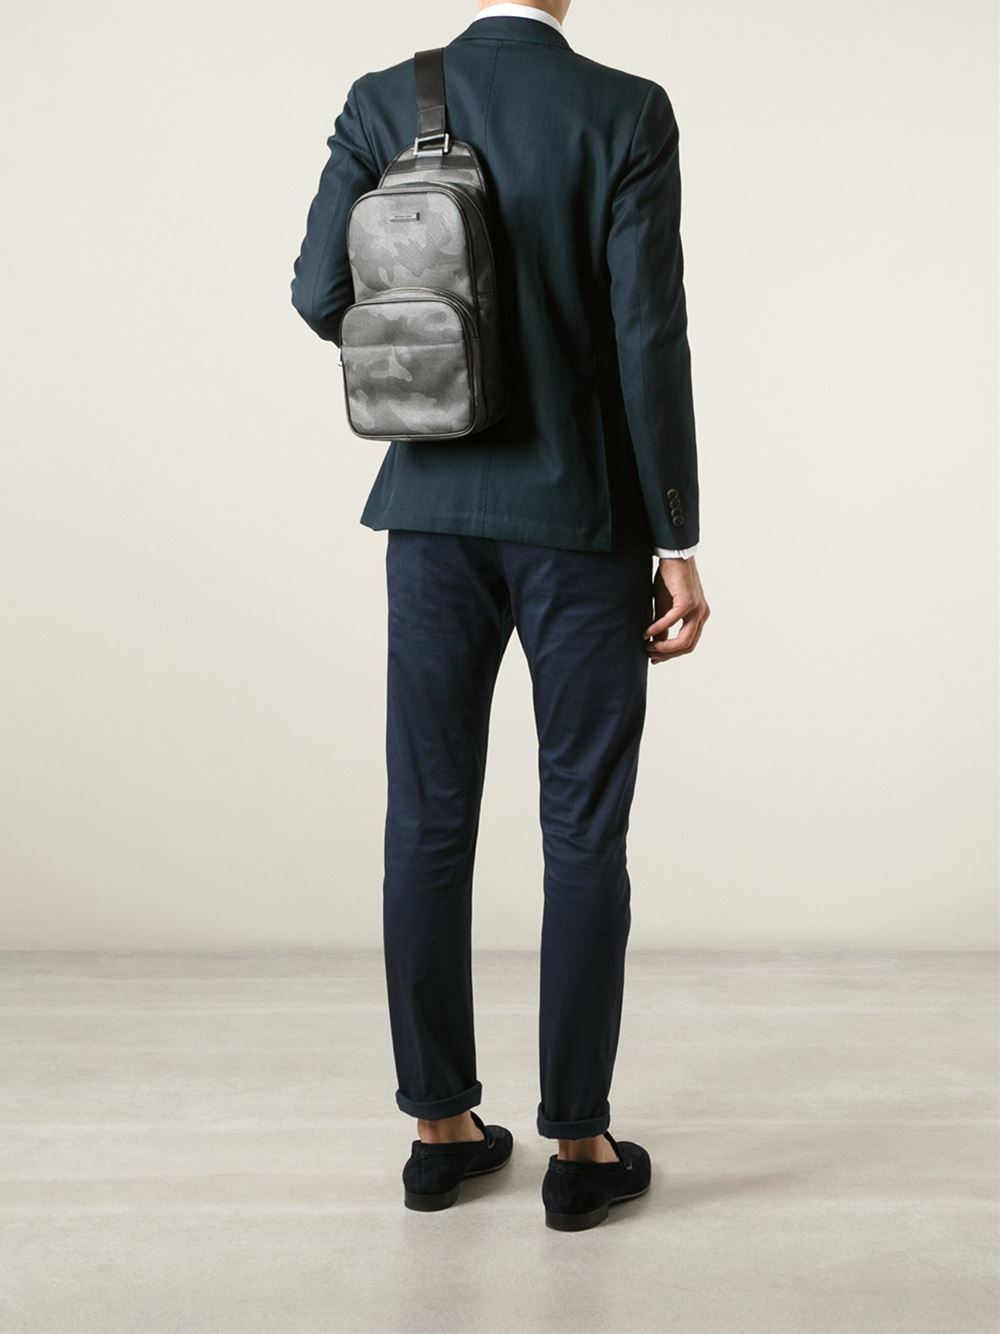 b5602b413d76 ... coupon code for lyst michael kors camouflage pattern backpack in gray  for men 56bc6 adcbd